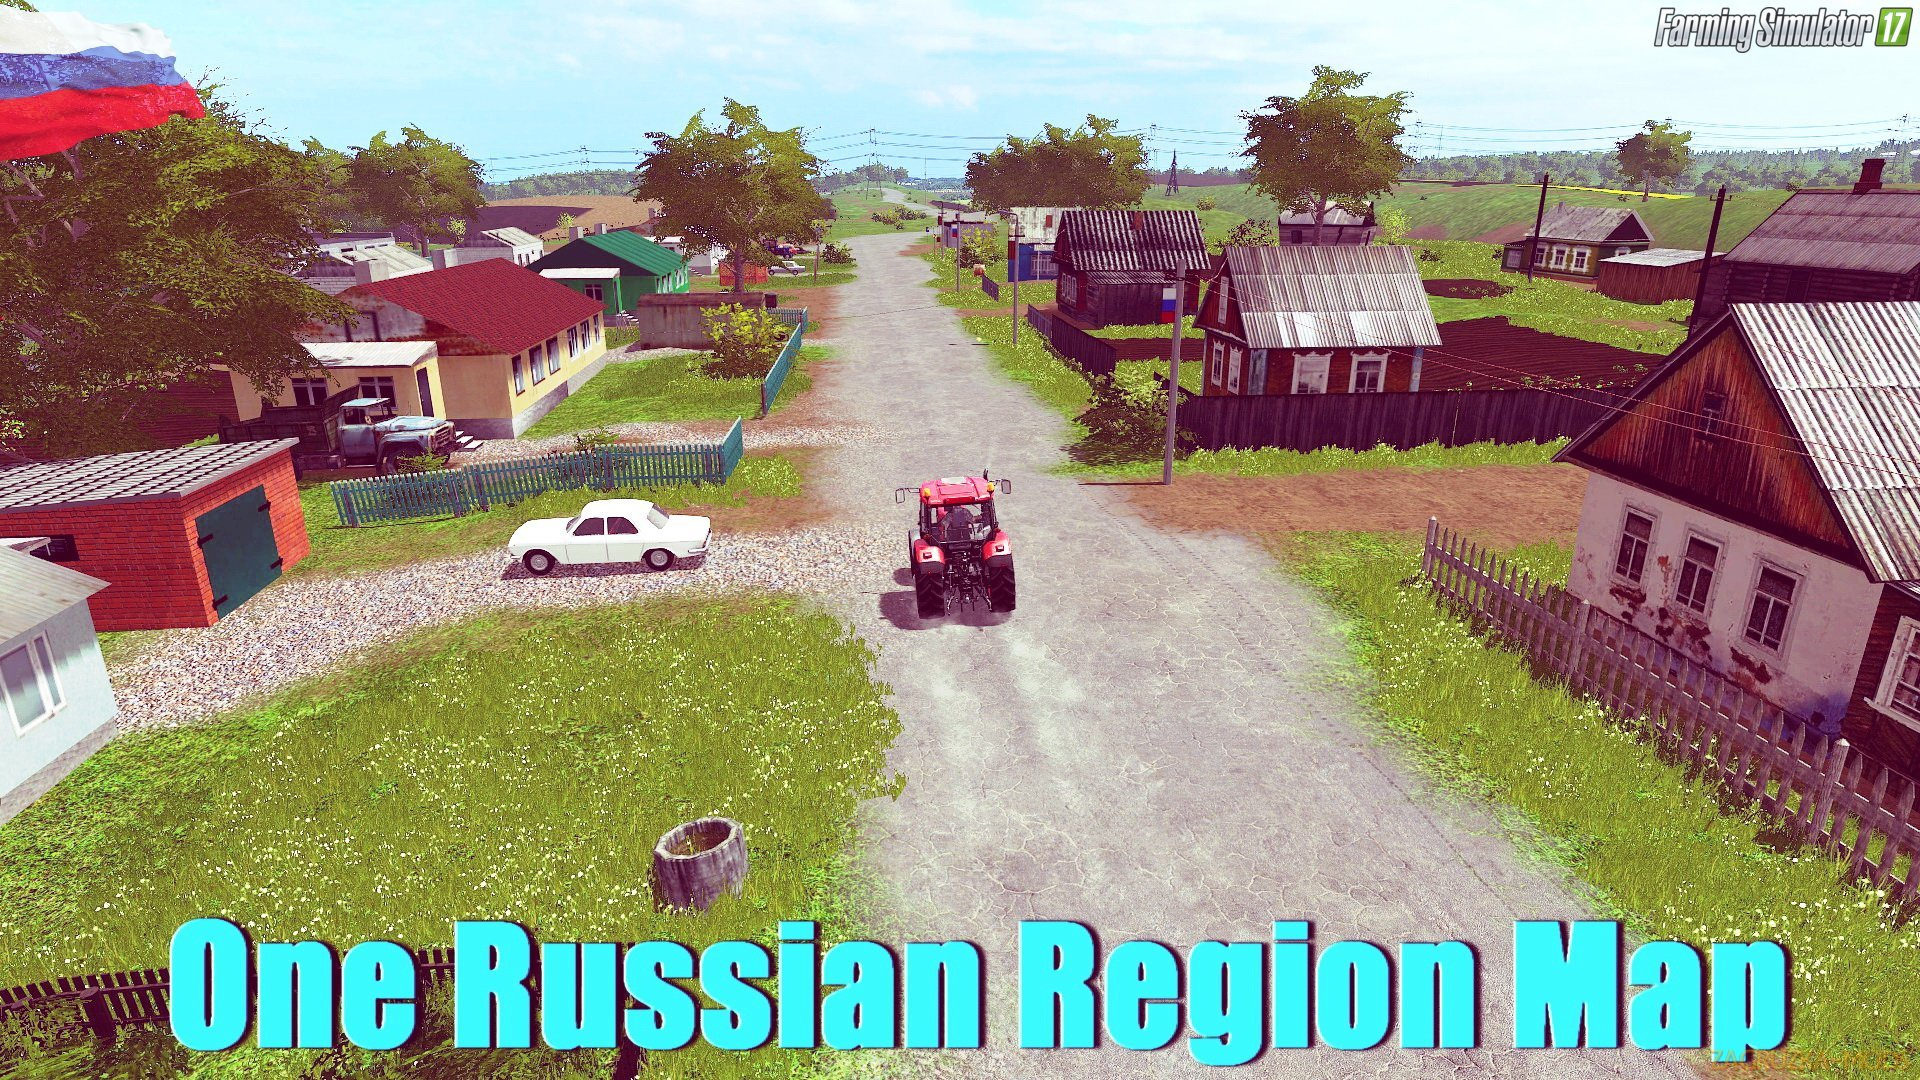 One Russian Region Map v1.2 for FS 17